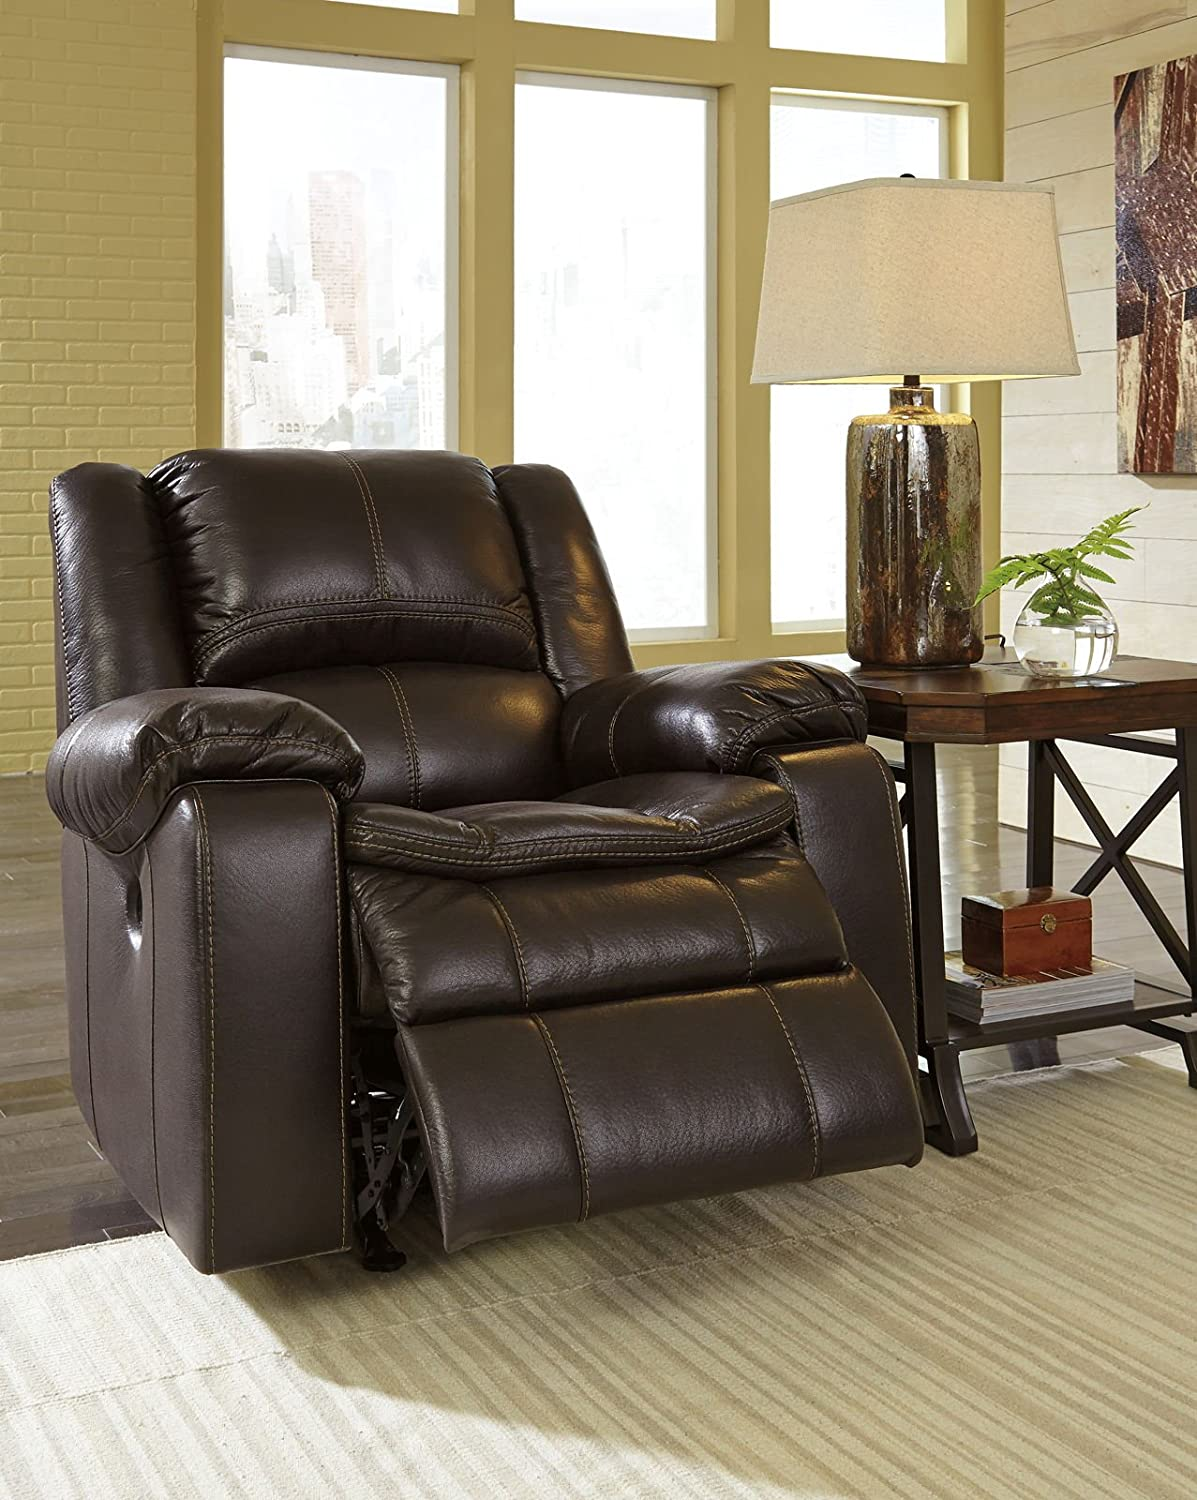 Signature Design by Ashley 8890598 Long Knight Collection Power Recliner - Brown